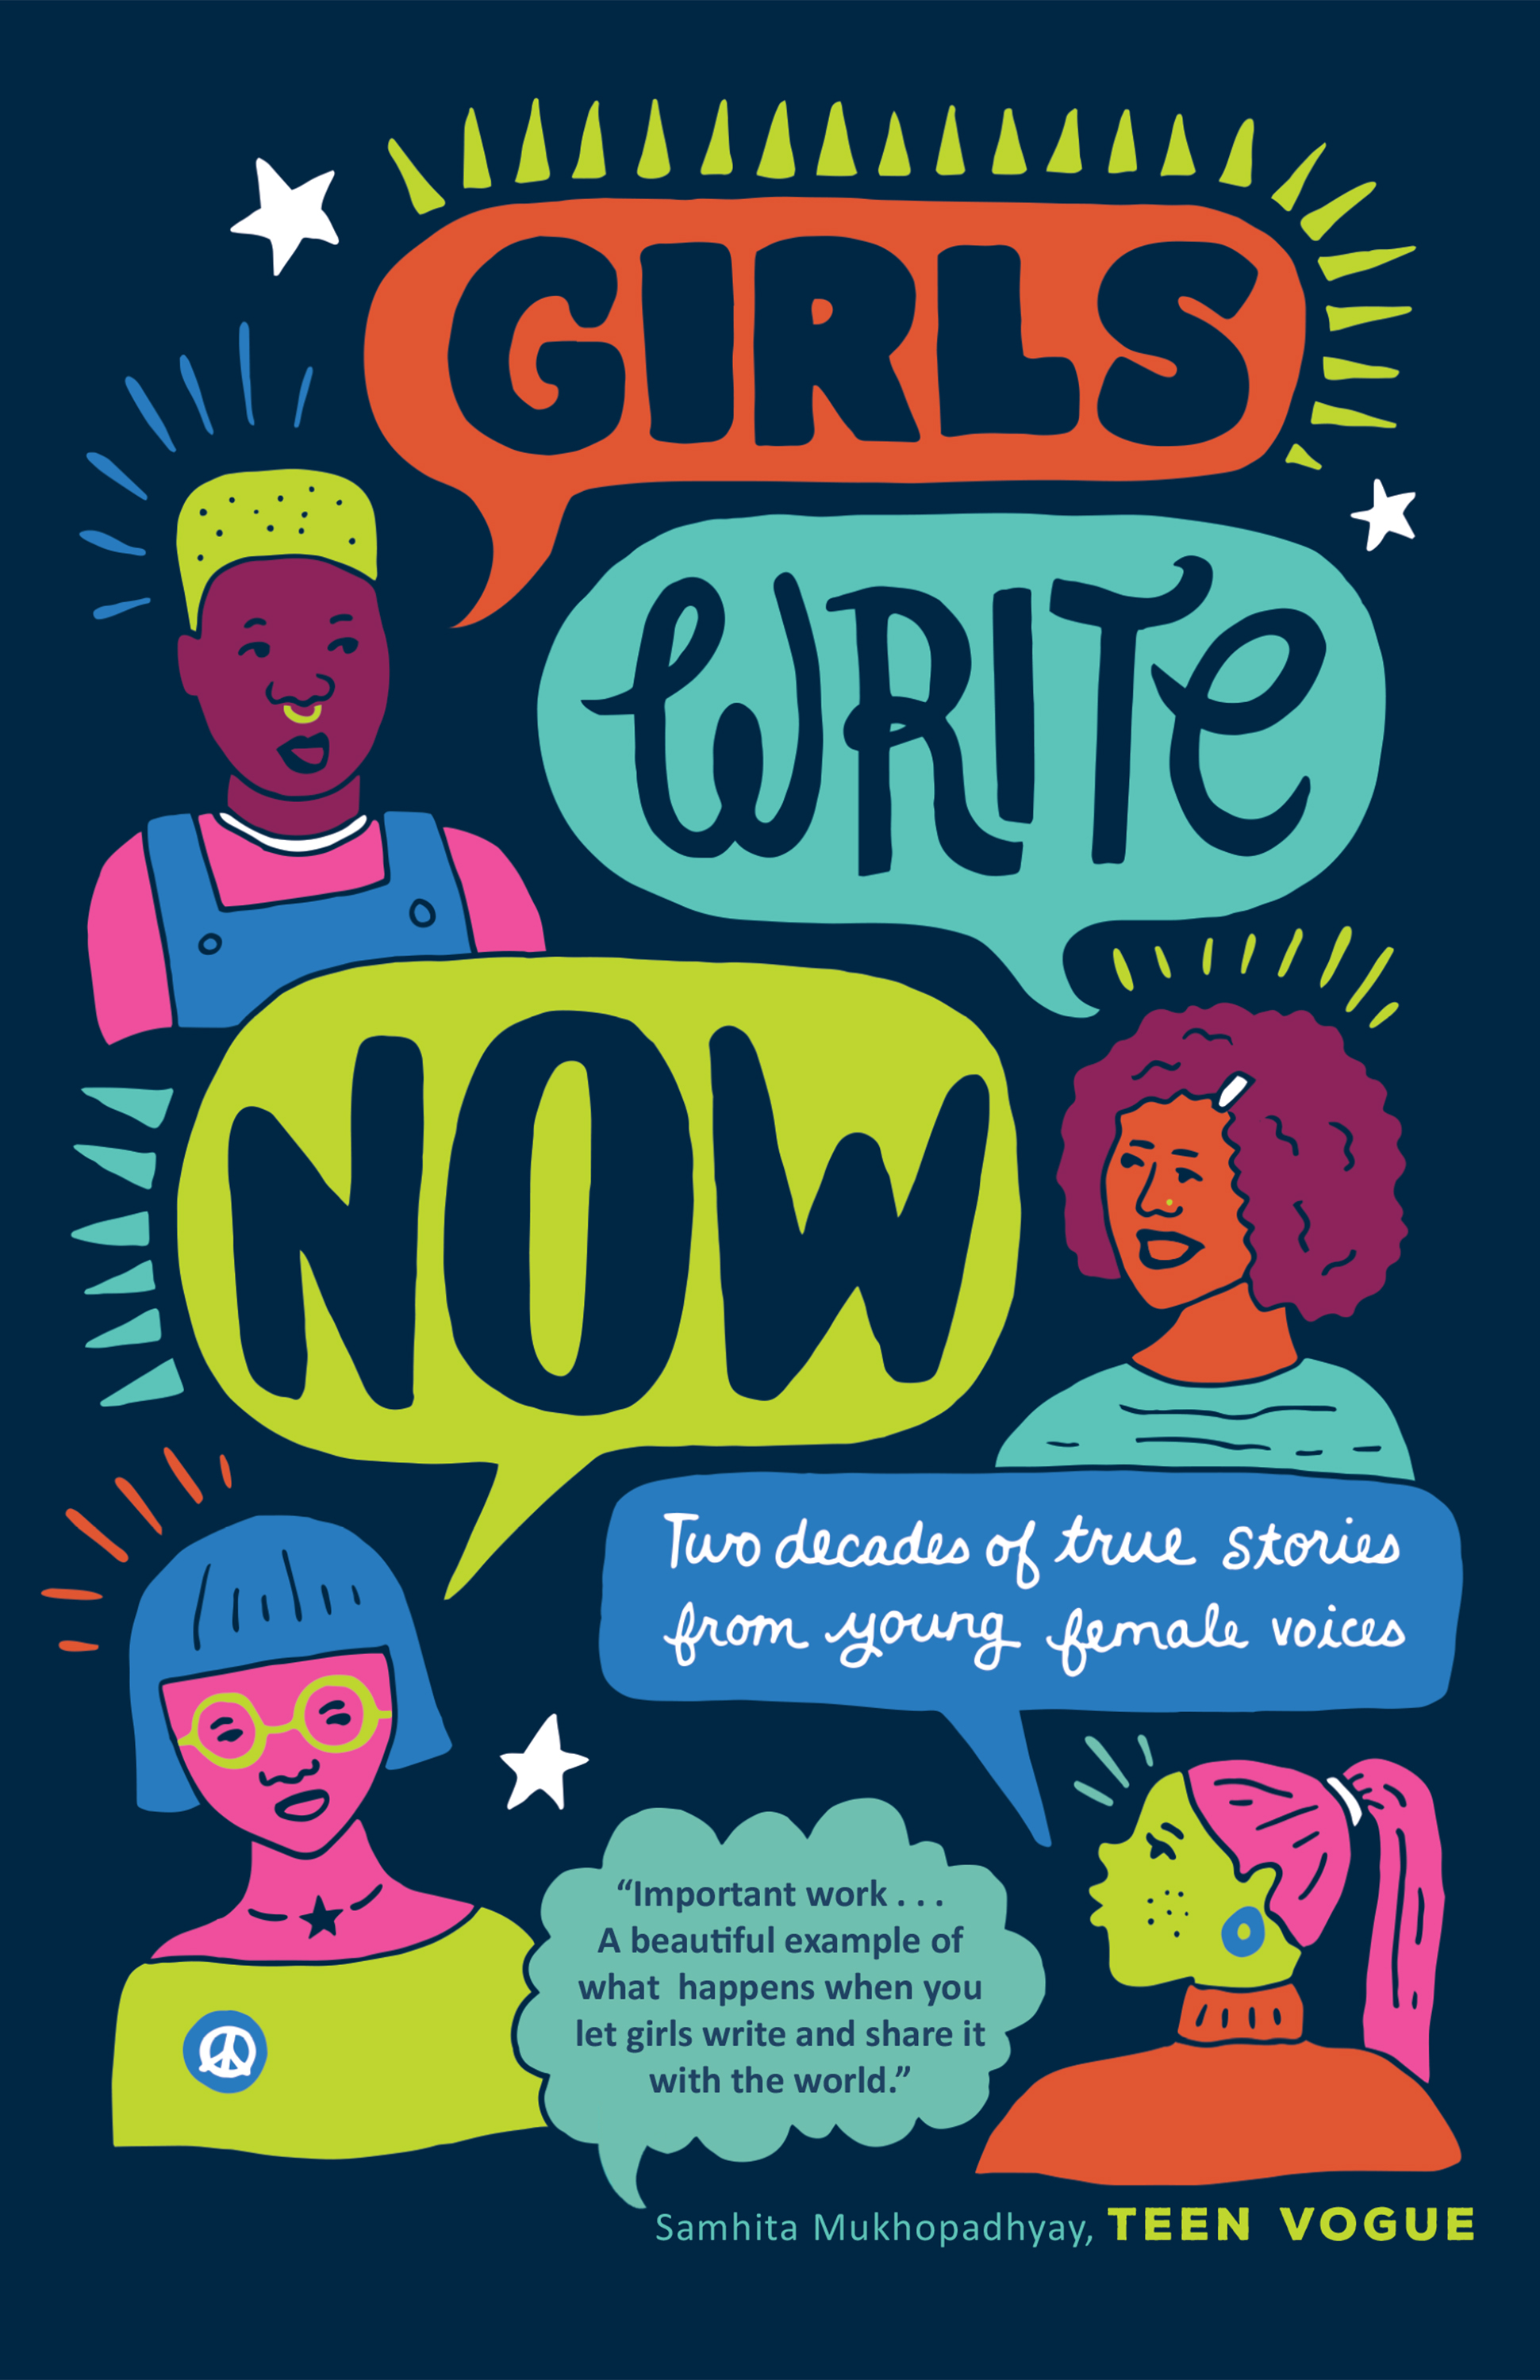 df3f70af48 I've had the honor of editing five annual-anthologies for Girls Write Now.  Today's next generation of women writers are alright, and their stories are  ...